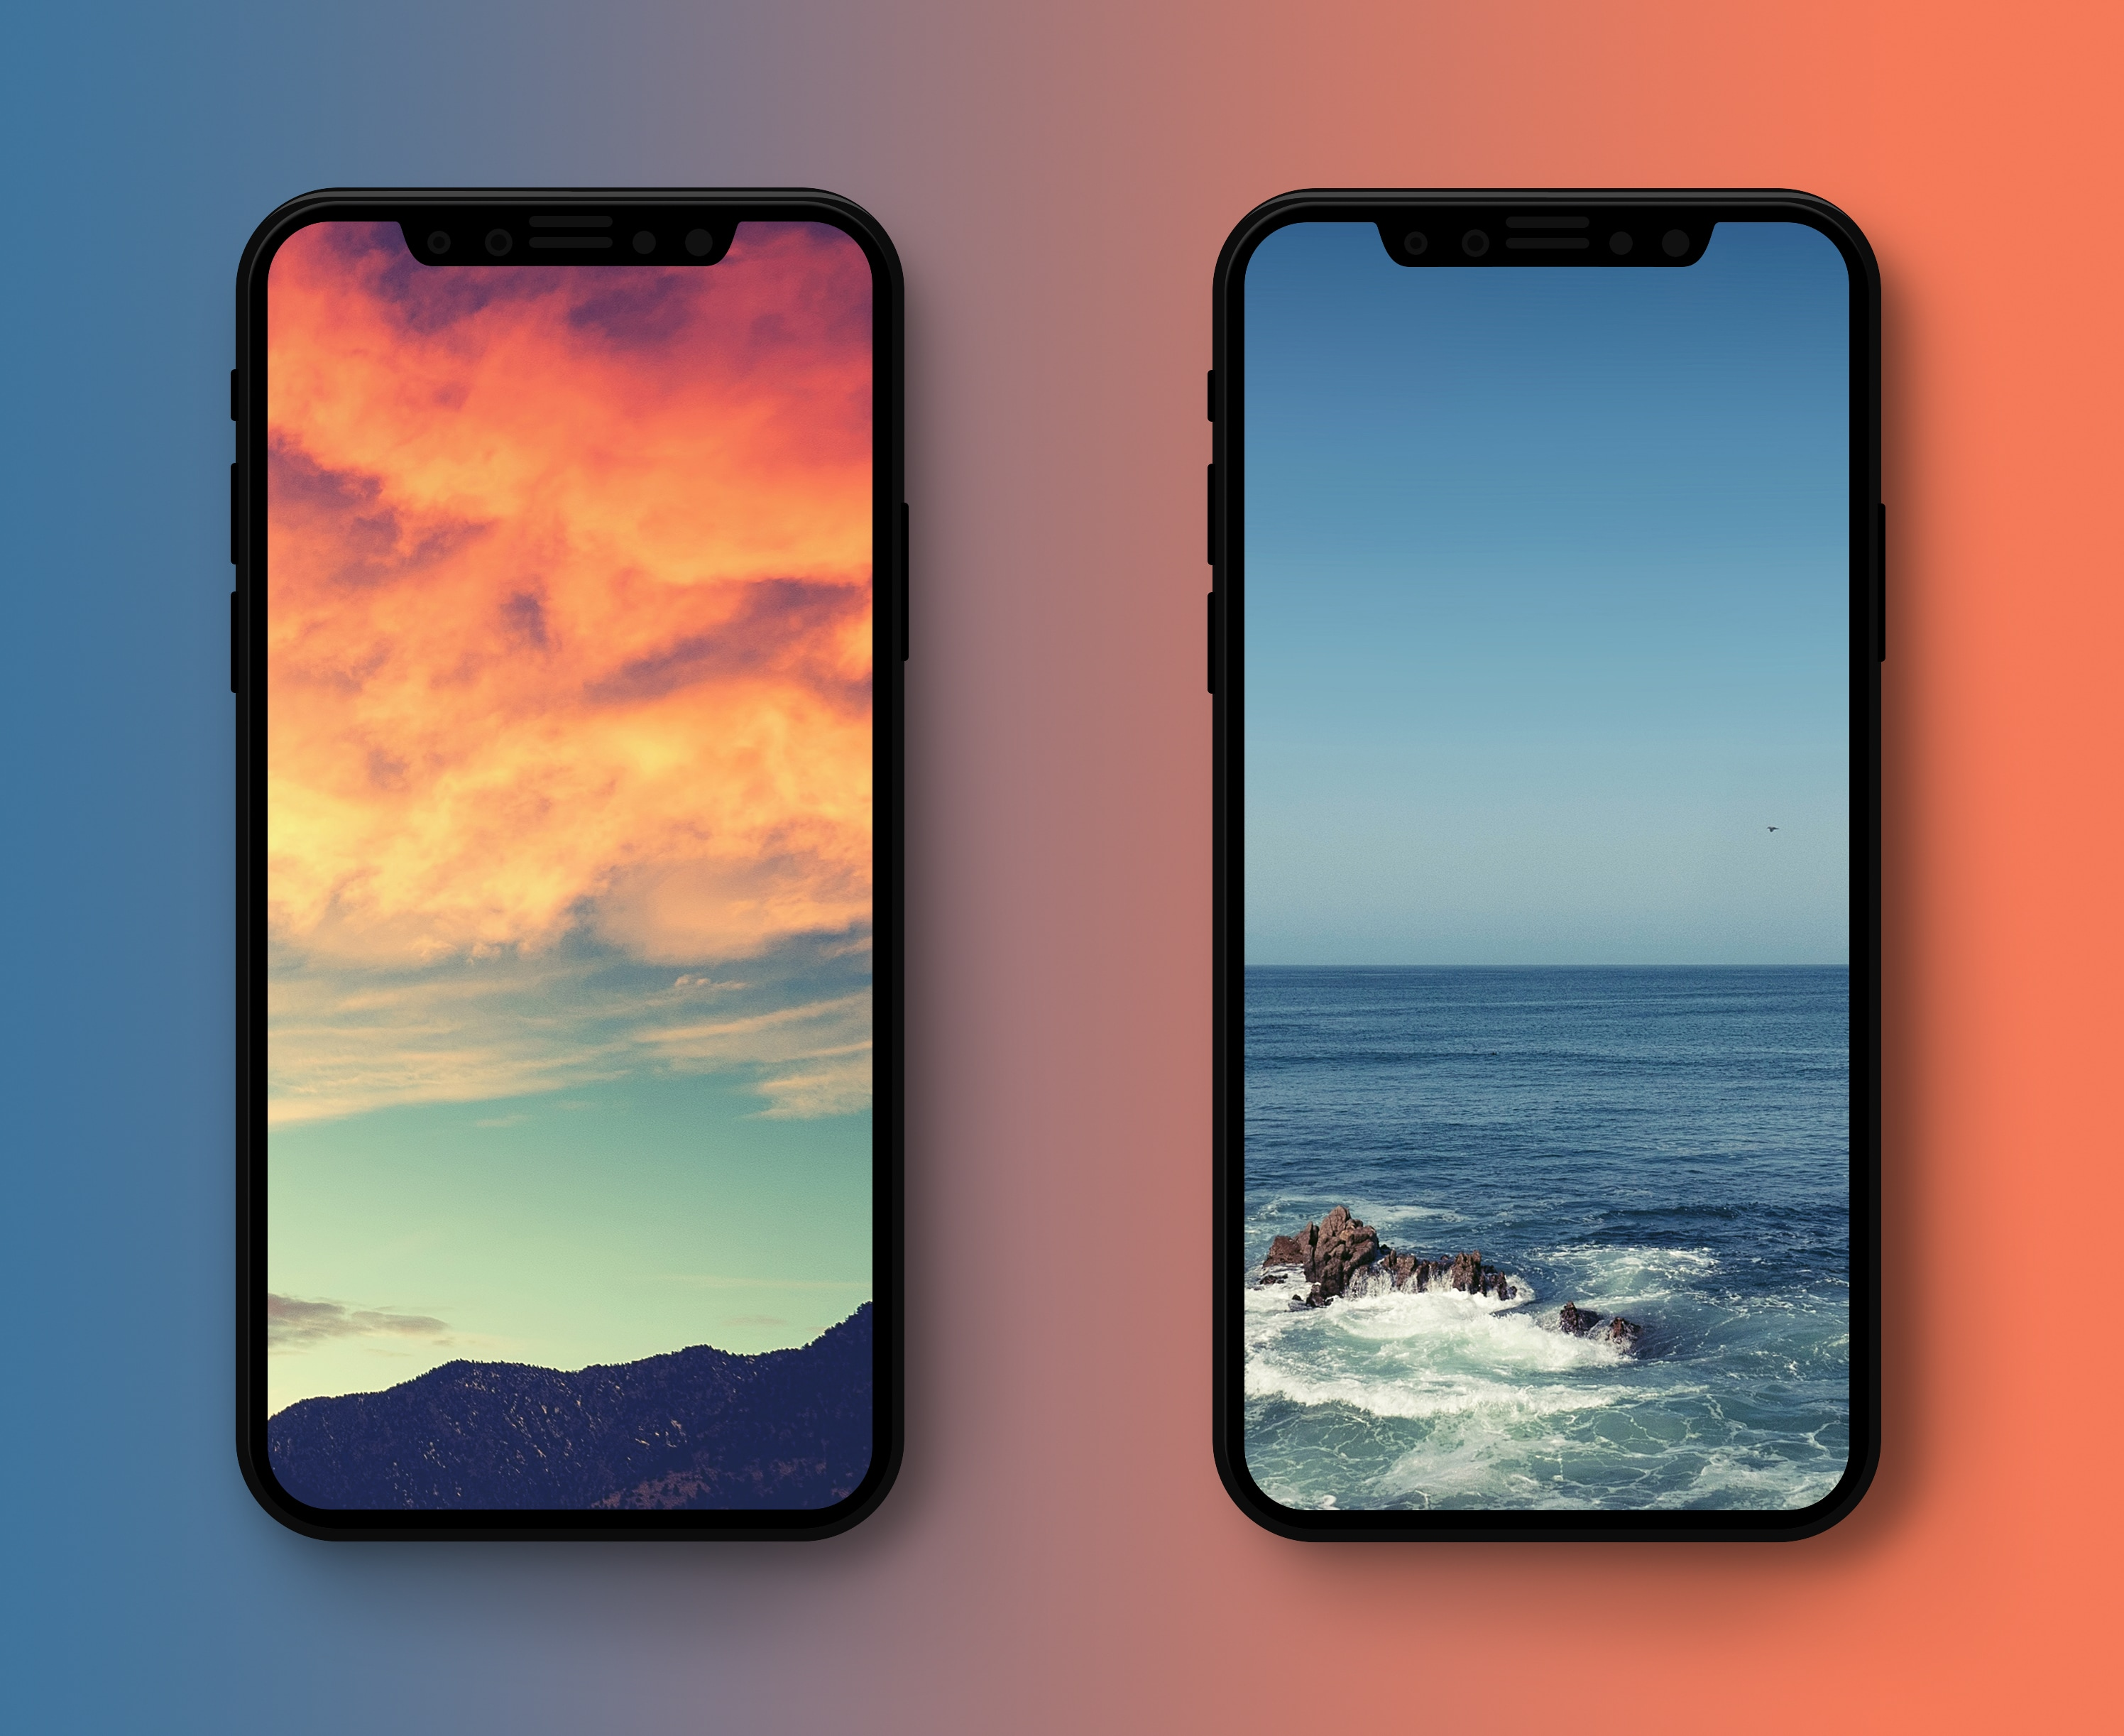 Iphone Wallpaper: Video: Hands-on With Exclusive IPhone X Wallpapers